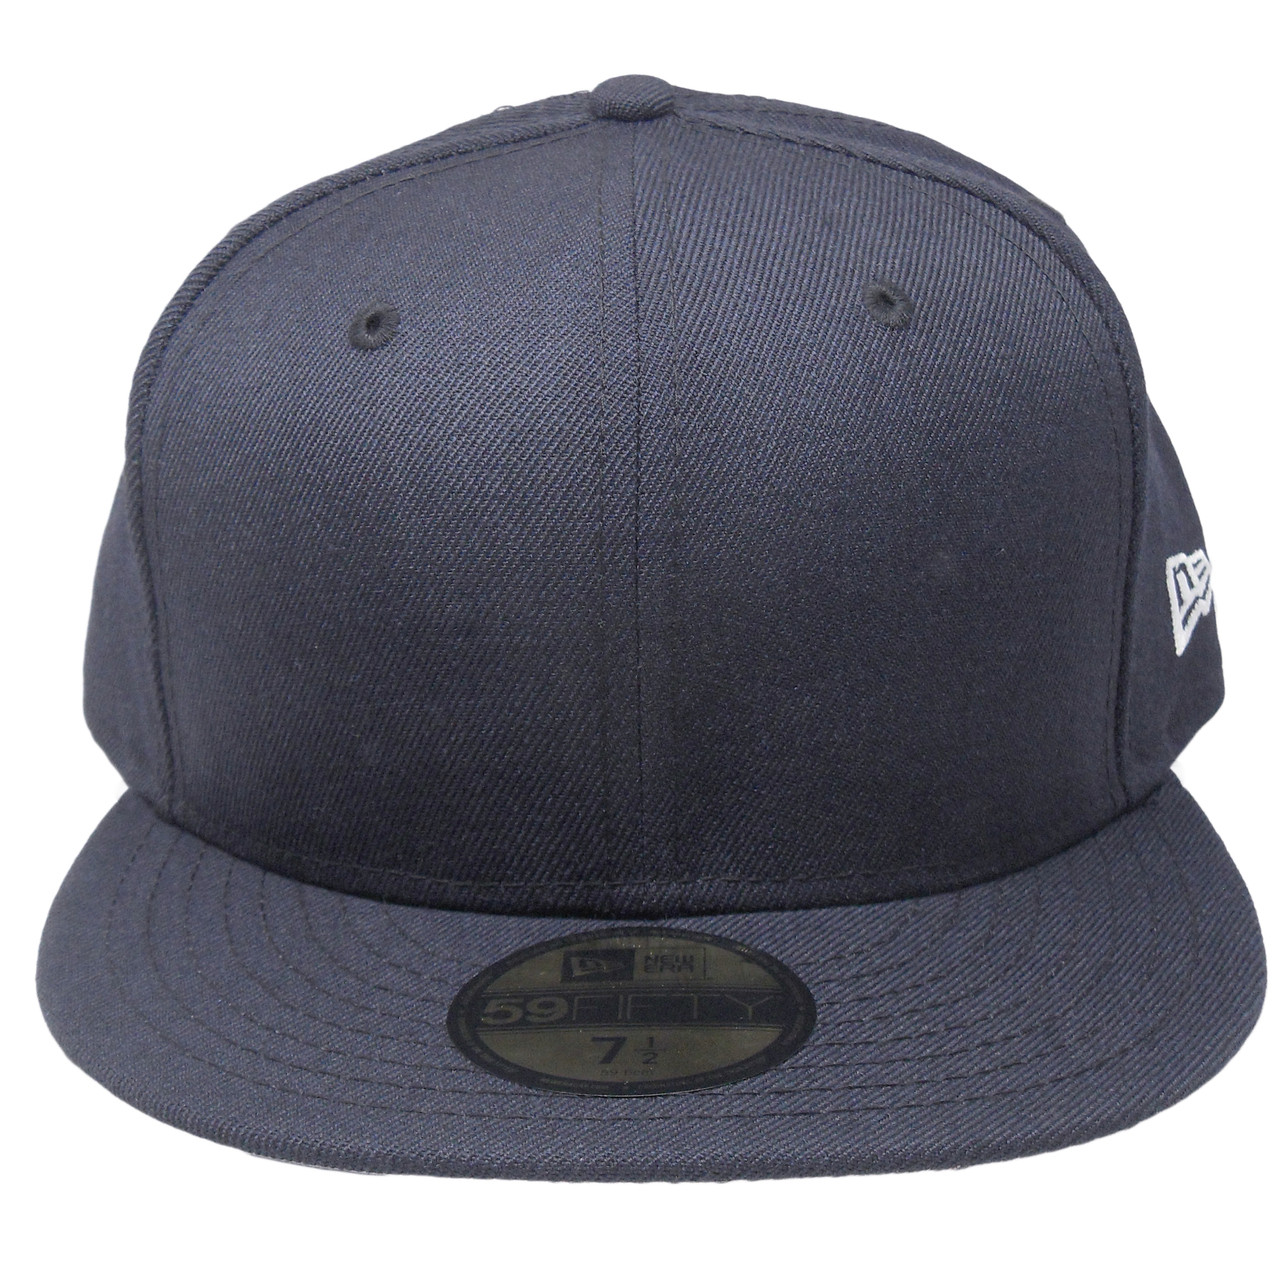 New Era 59Fifty Plain Blank Fitted Hat - Navy - ECapsUnlimited.com 18e13cb221c